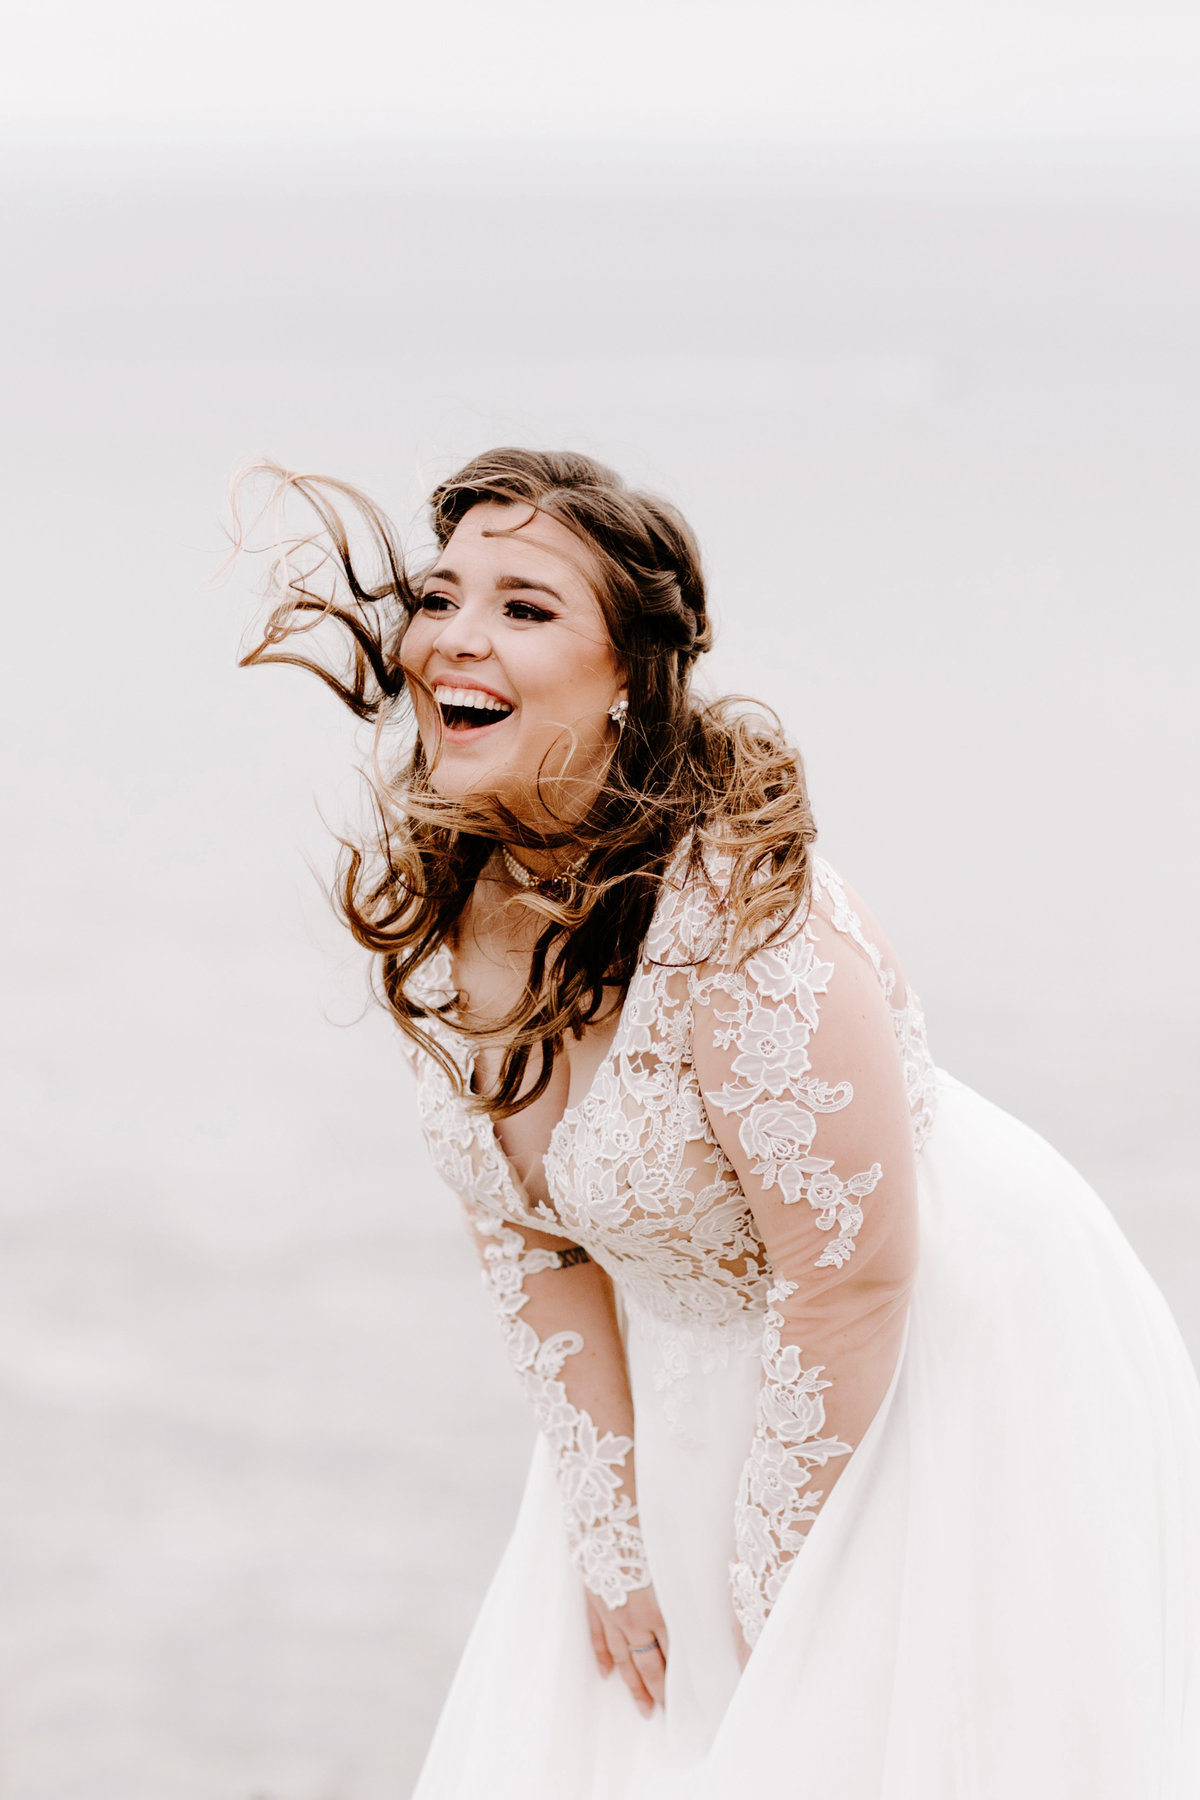 Joyful-Bride-Palos-Verde-Beach